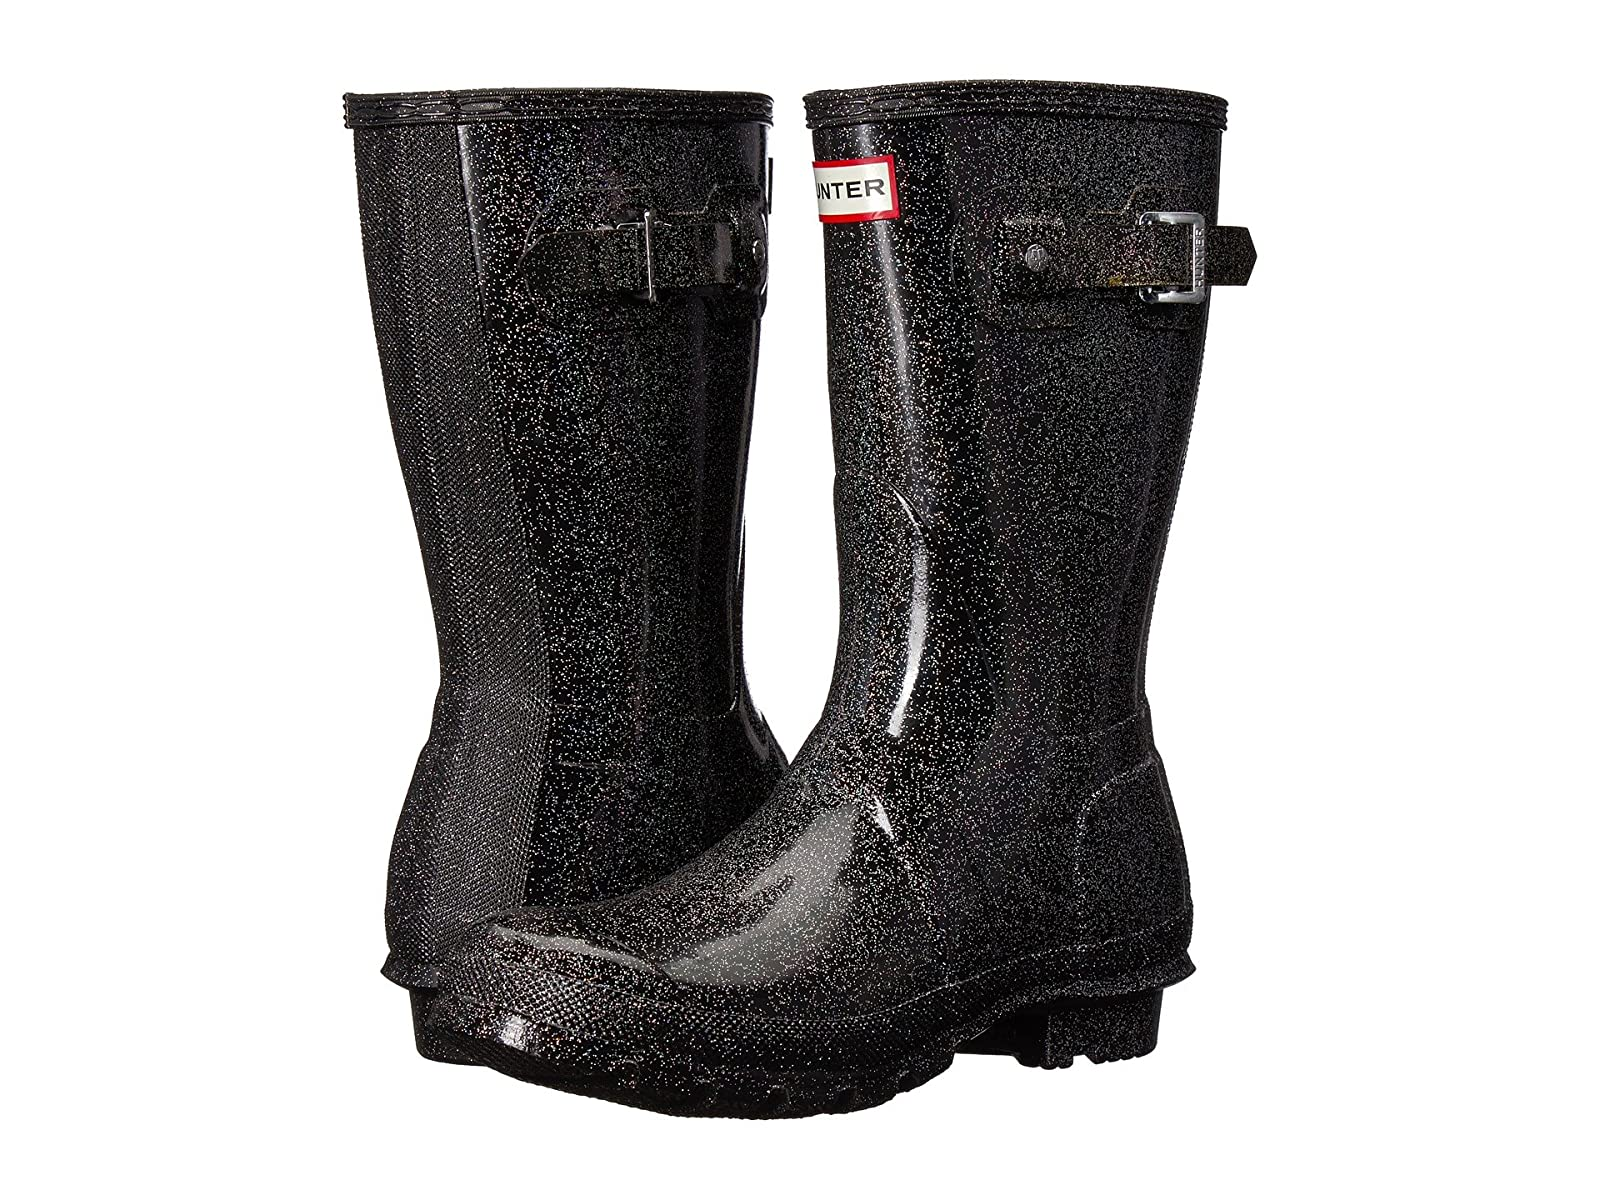 Hunter Original Starcloud Short Rain BootsCheap and distinctive eye-catching shoes